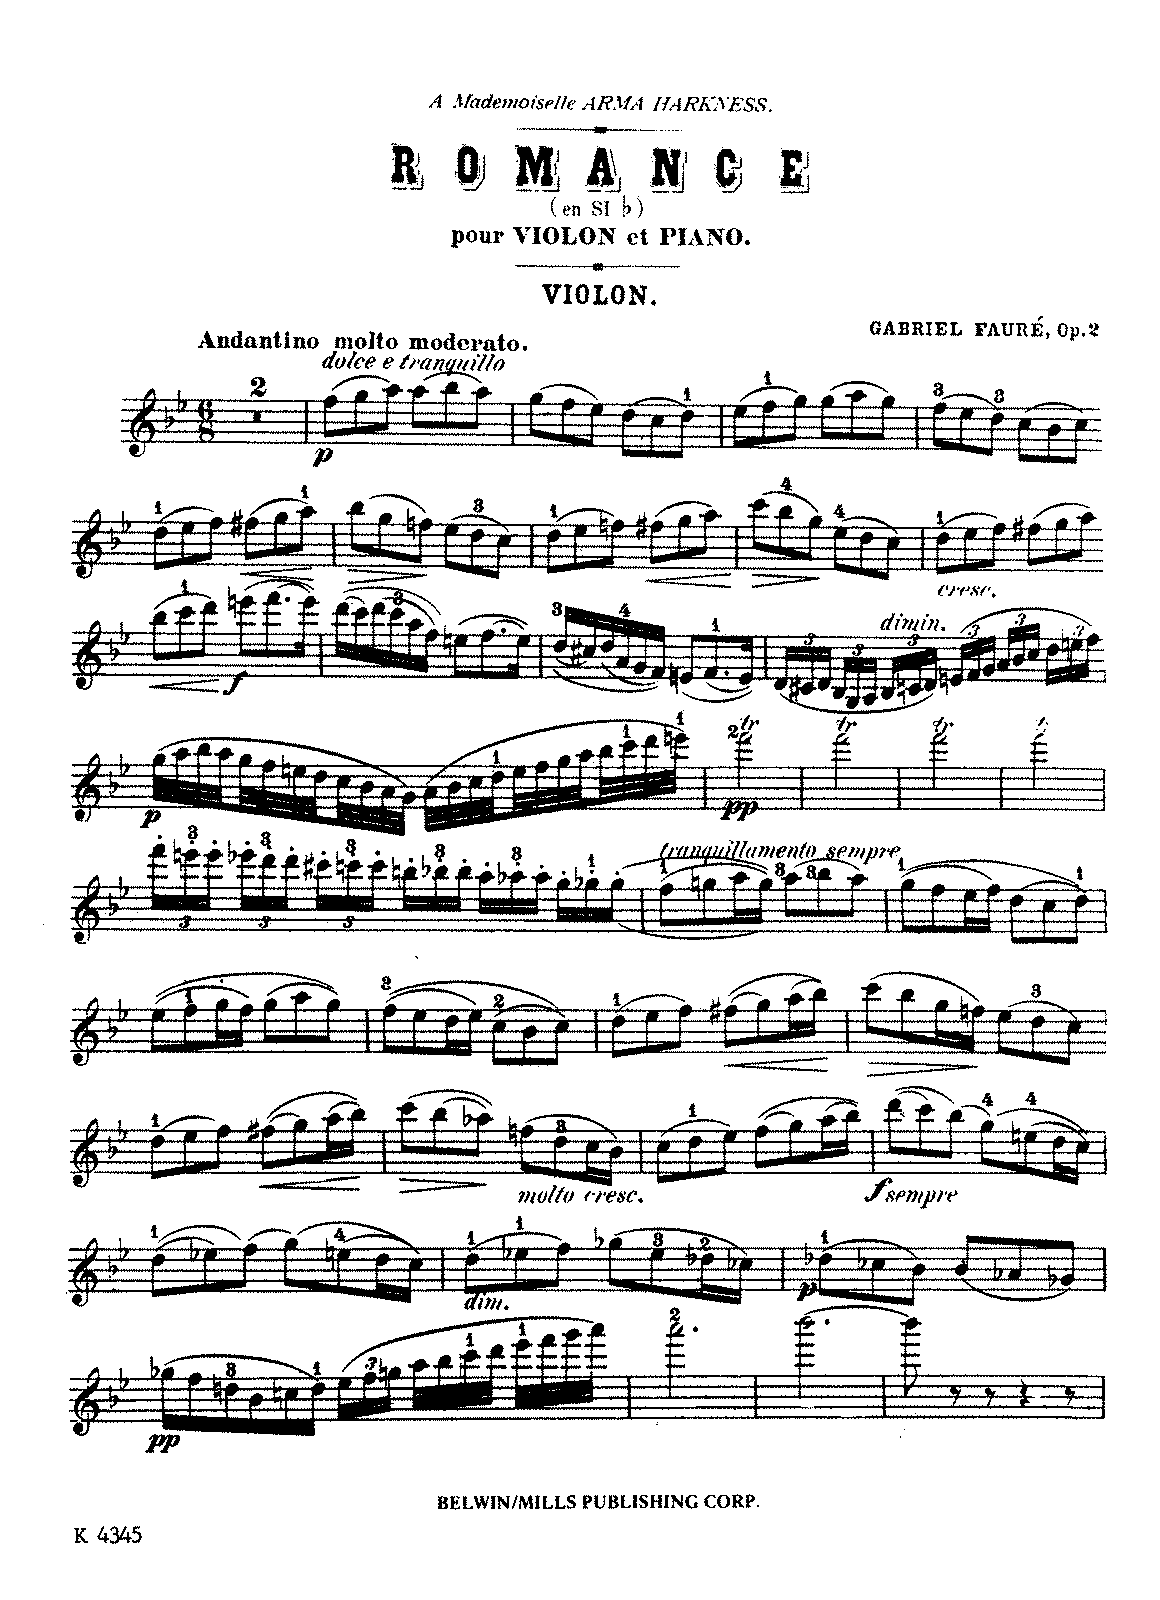 PMLP59263-Fauré - Romance, Op. 28 (violin and piano).pdf